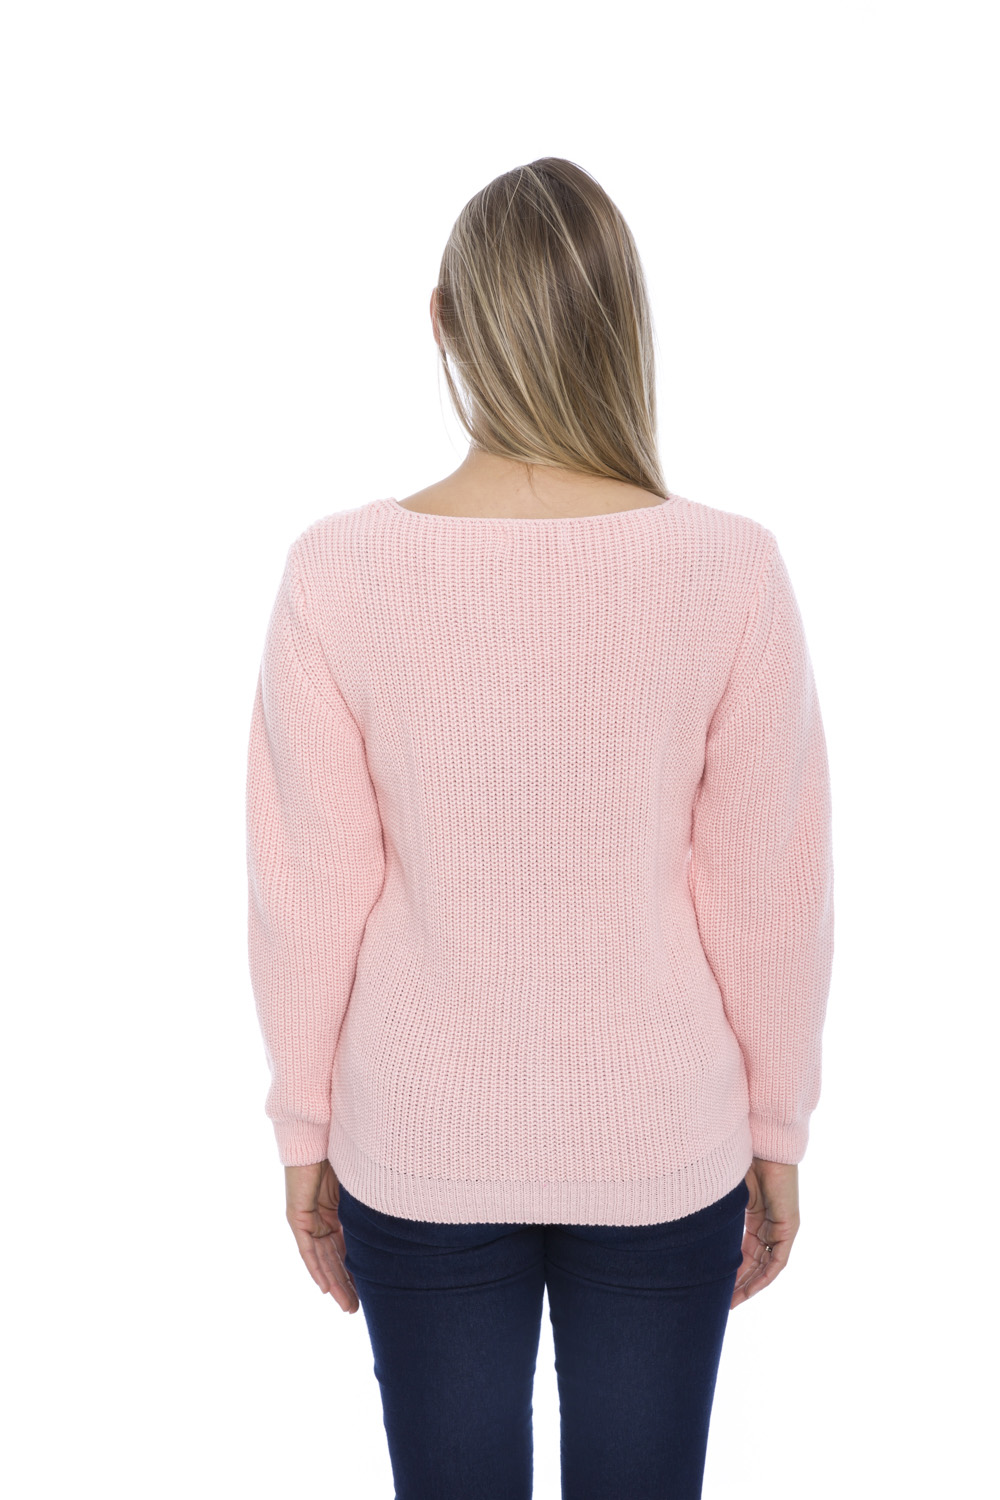 Blusa de Tricot Candy Color - Rosa